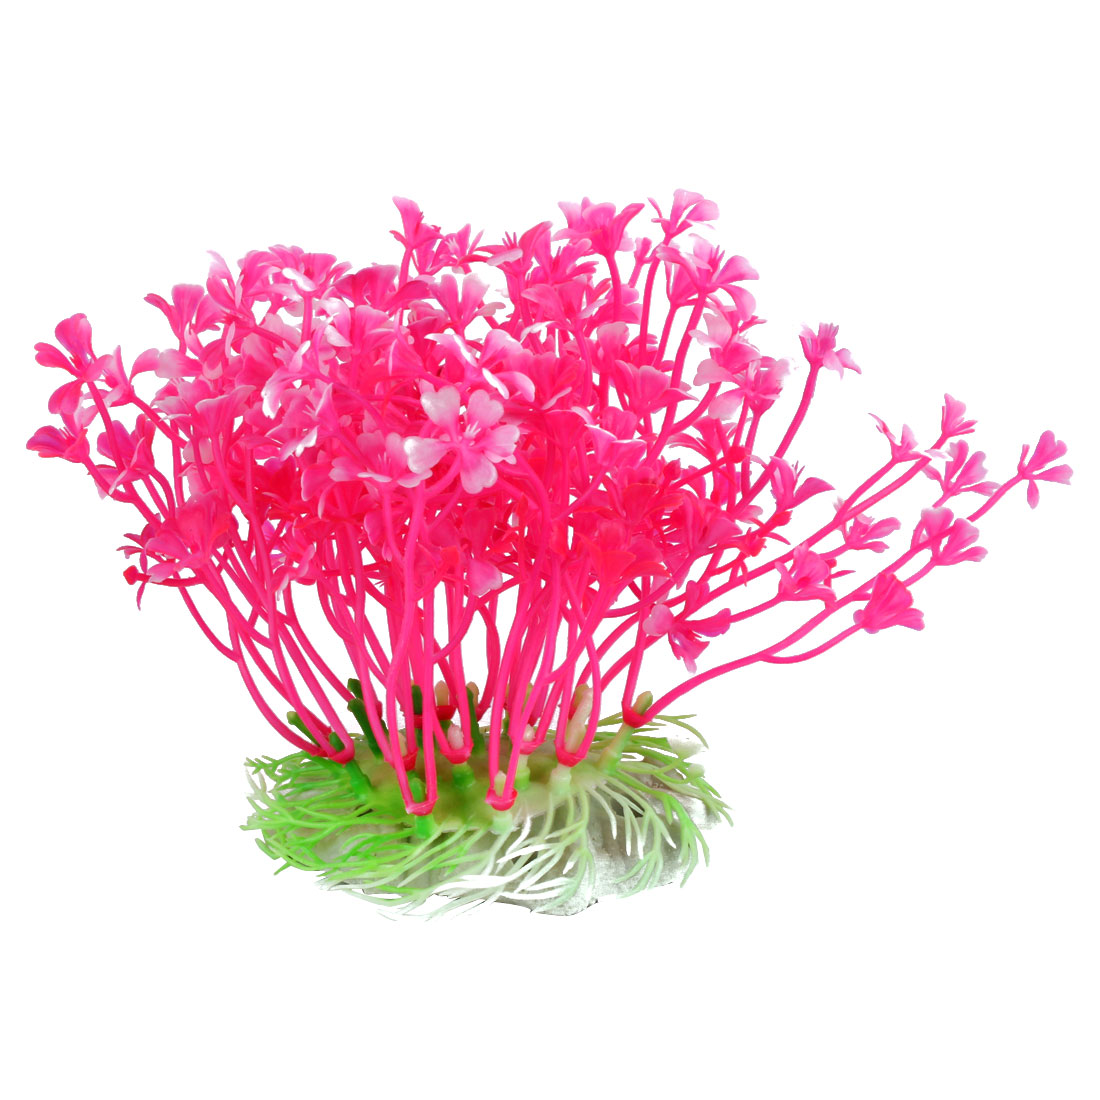 Fish Tank Aquatic Dwarf Plastic Plant Ornament Hot Pink White